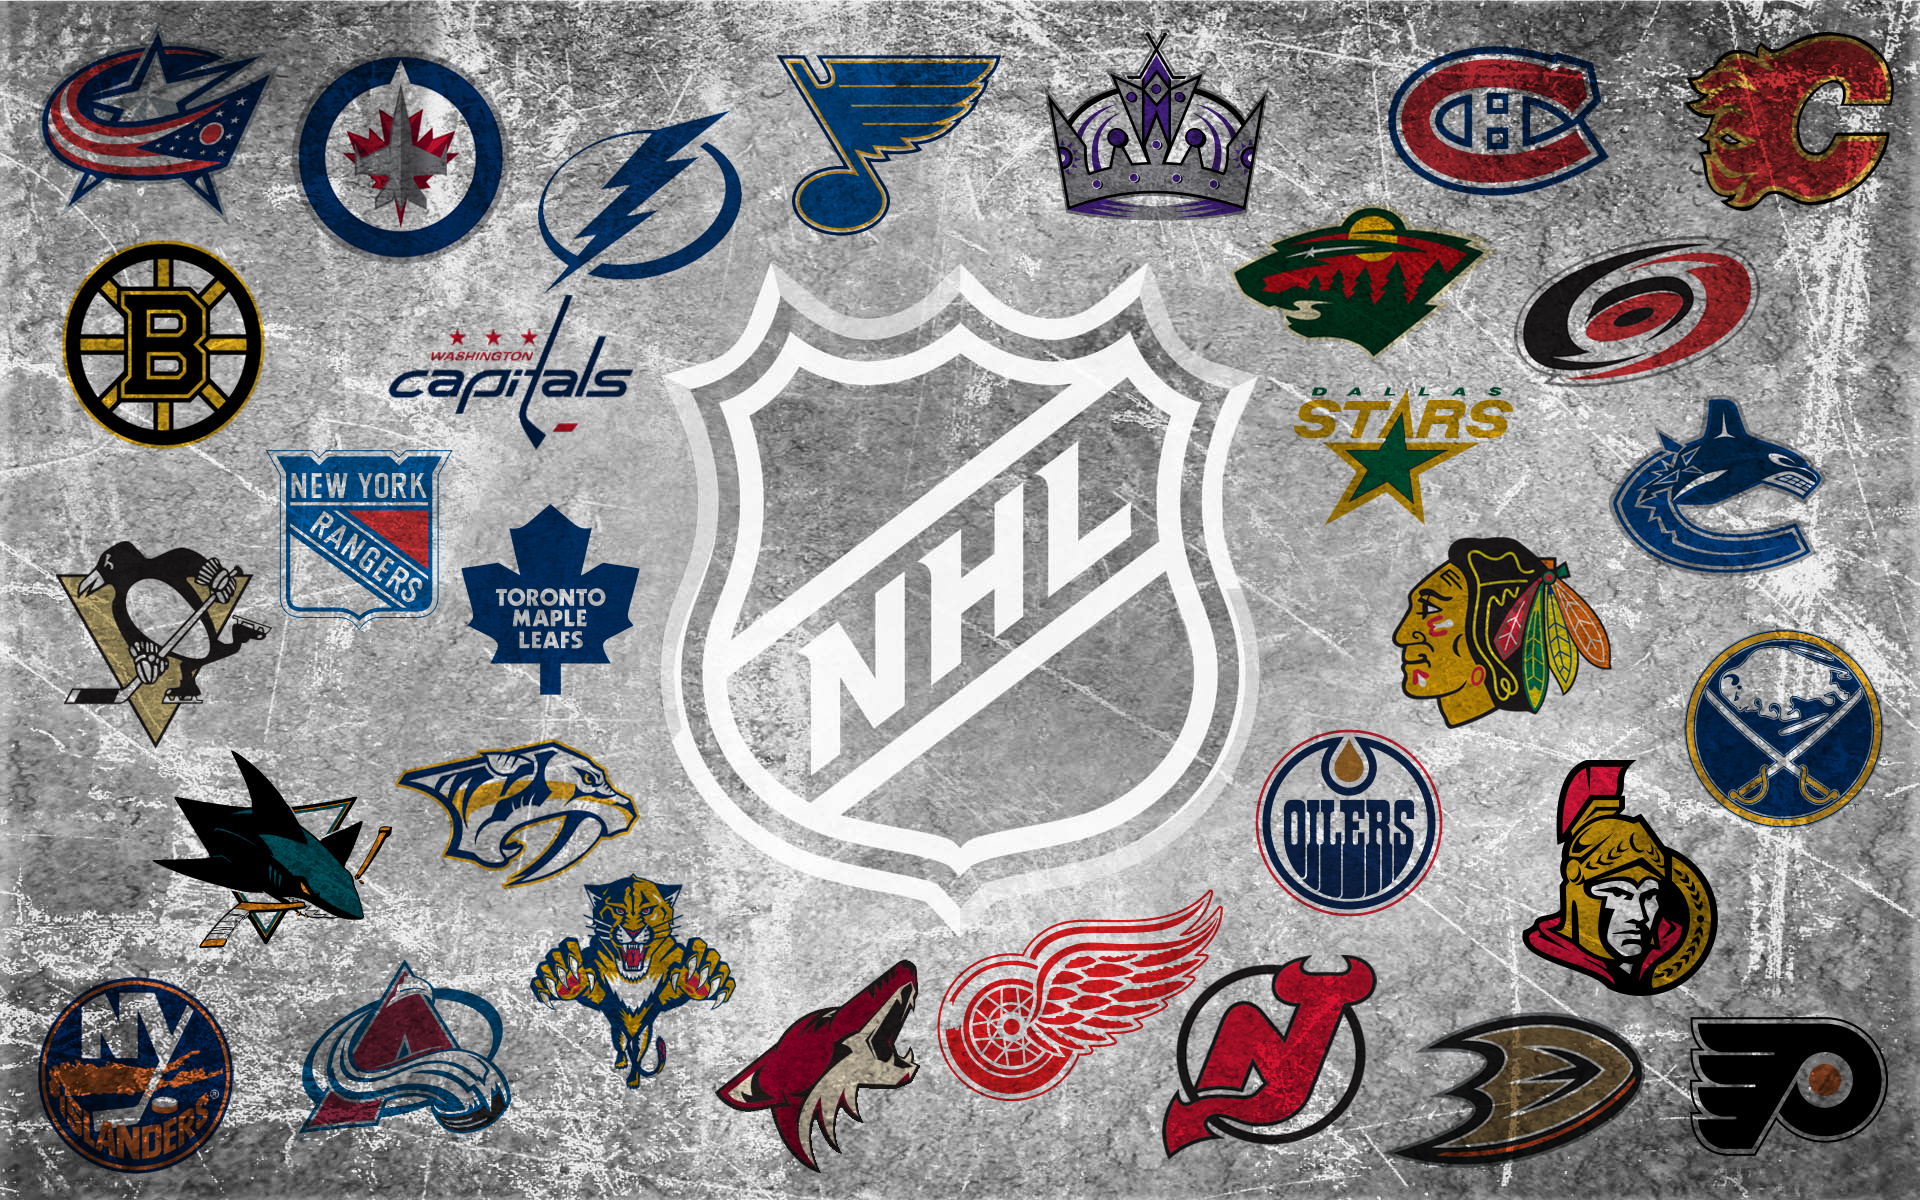 Nhl Team Logos Wallpaper Nhl team logo 2 0 by 1920x1200